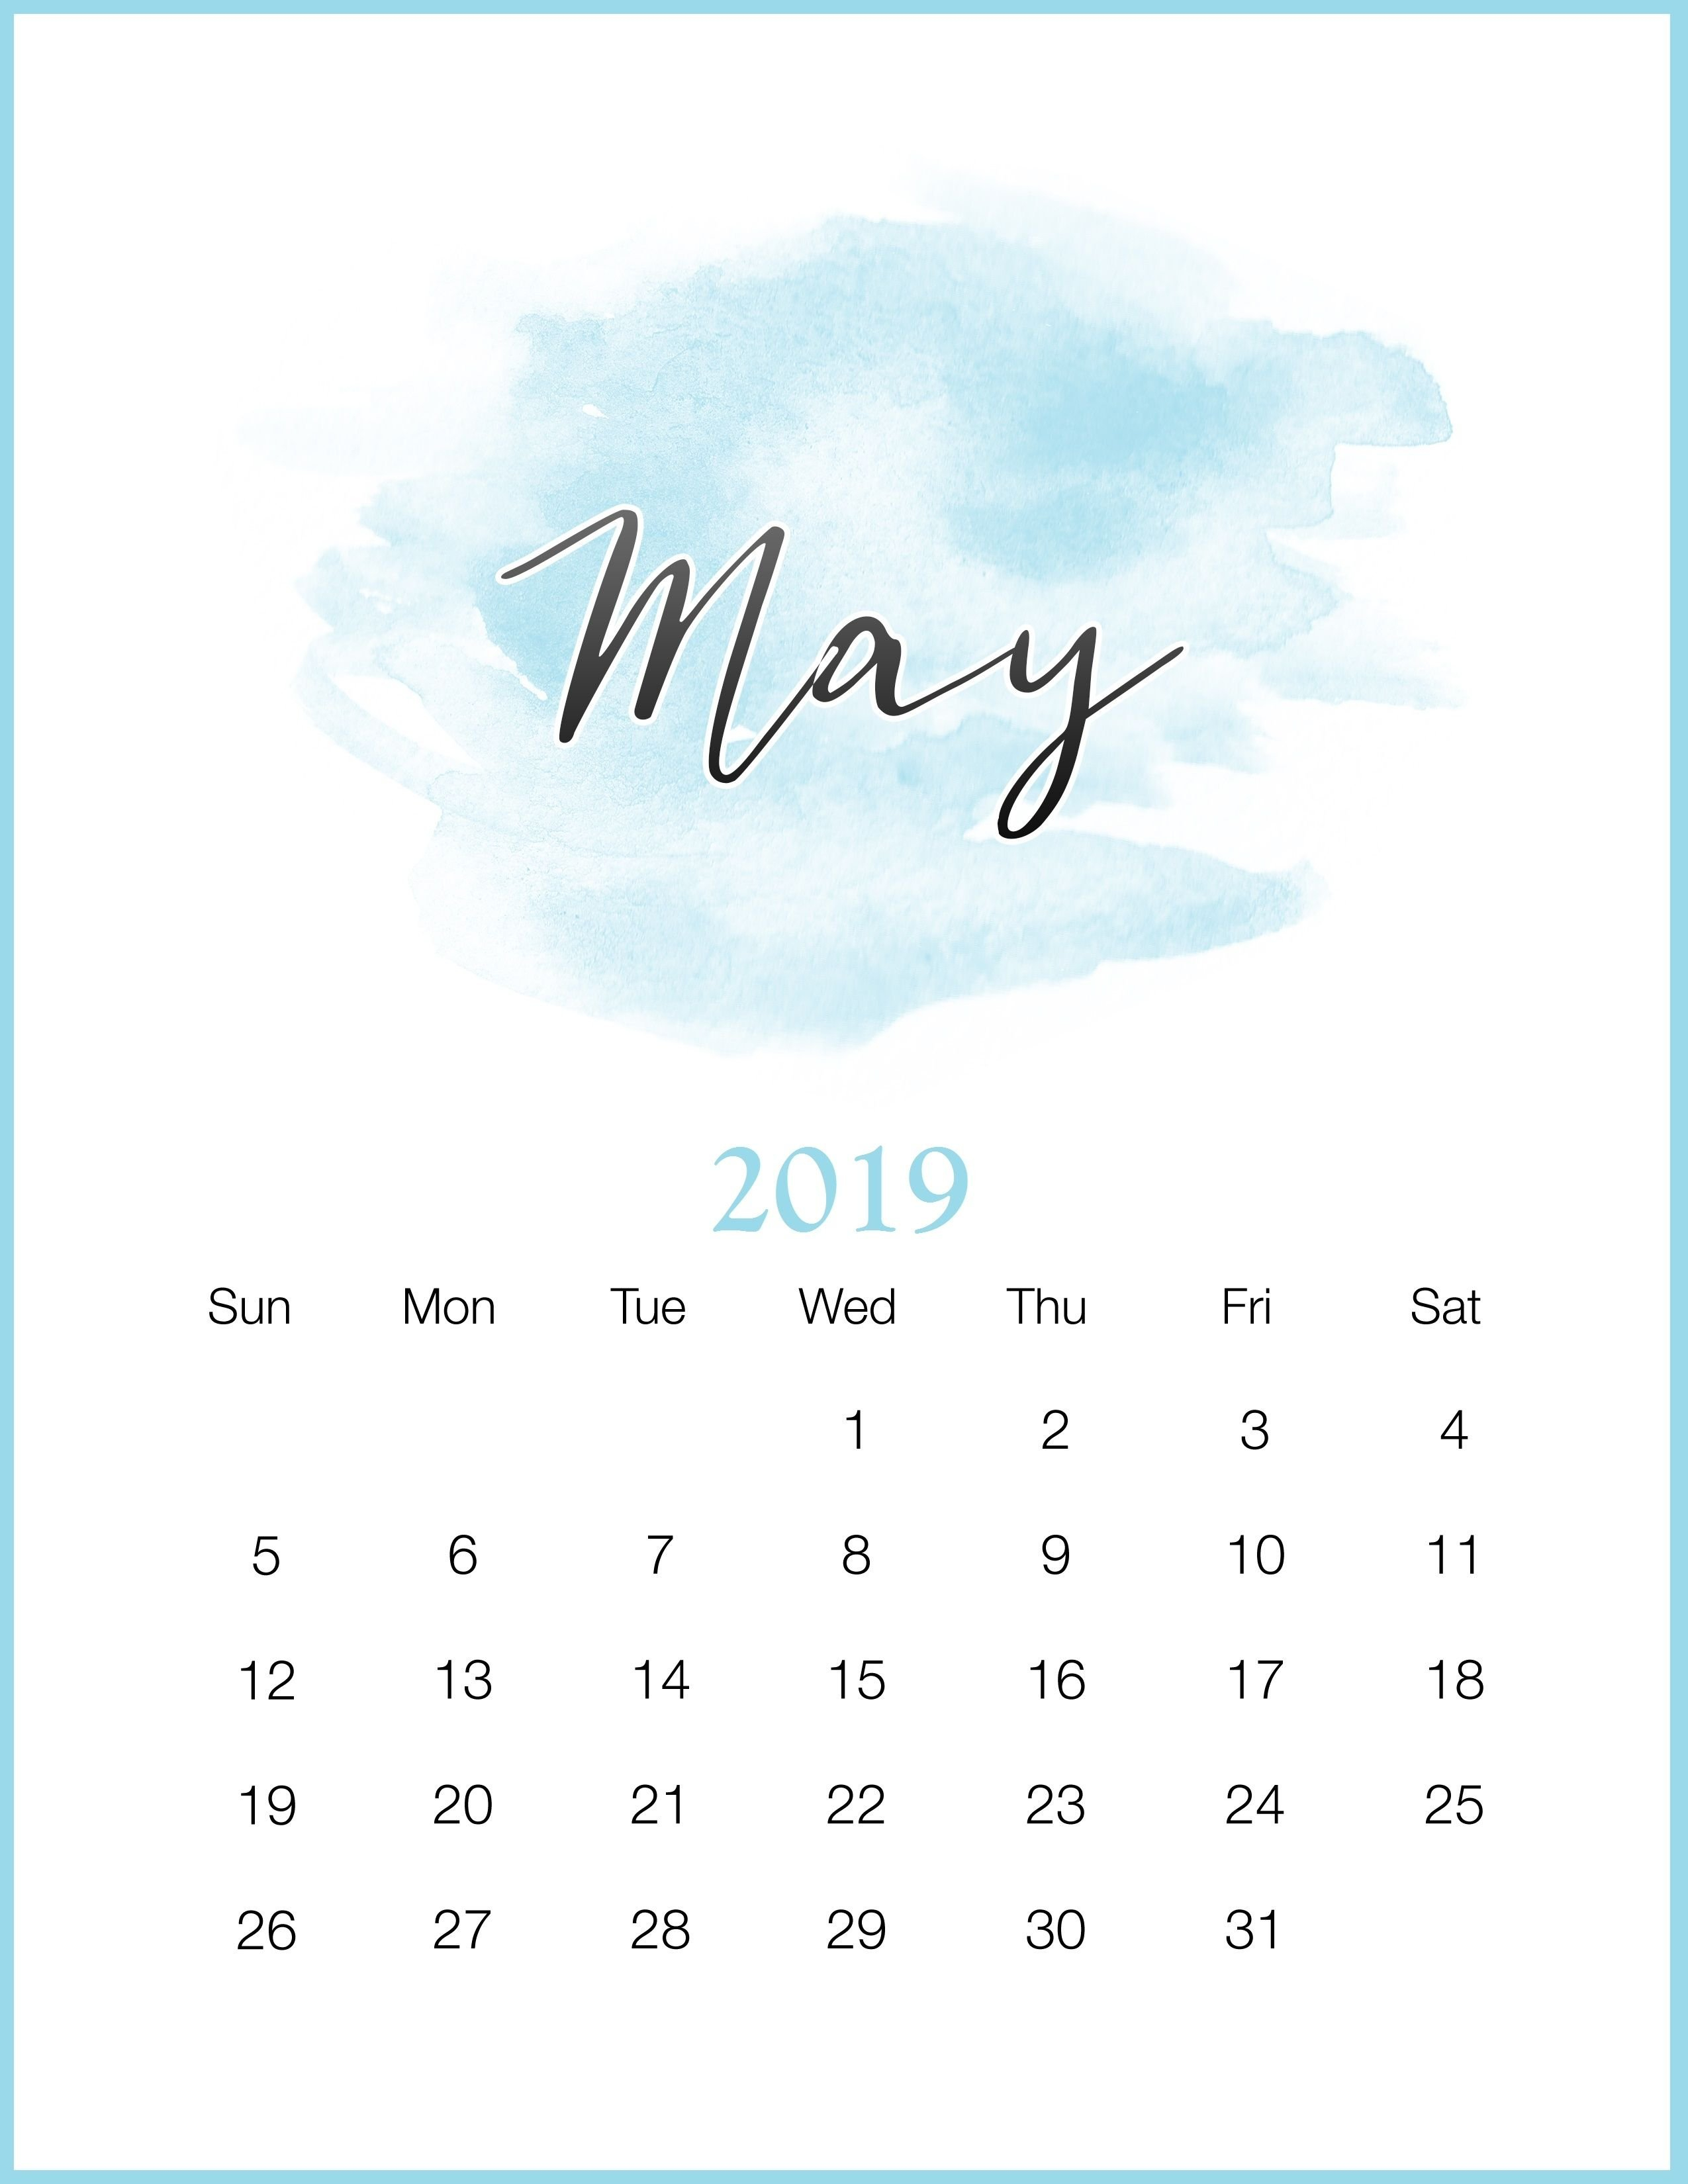 Watercolor 2019 Monthly Printable Calendar Calendar 2019May 2019 May 7 2019 Calendar